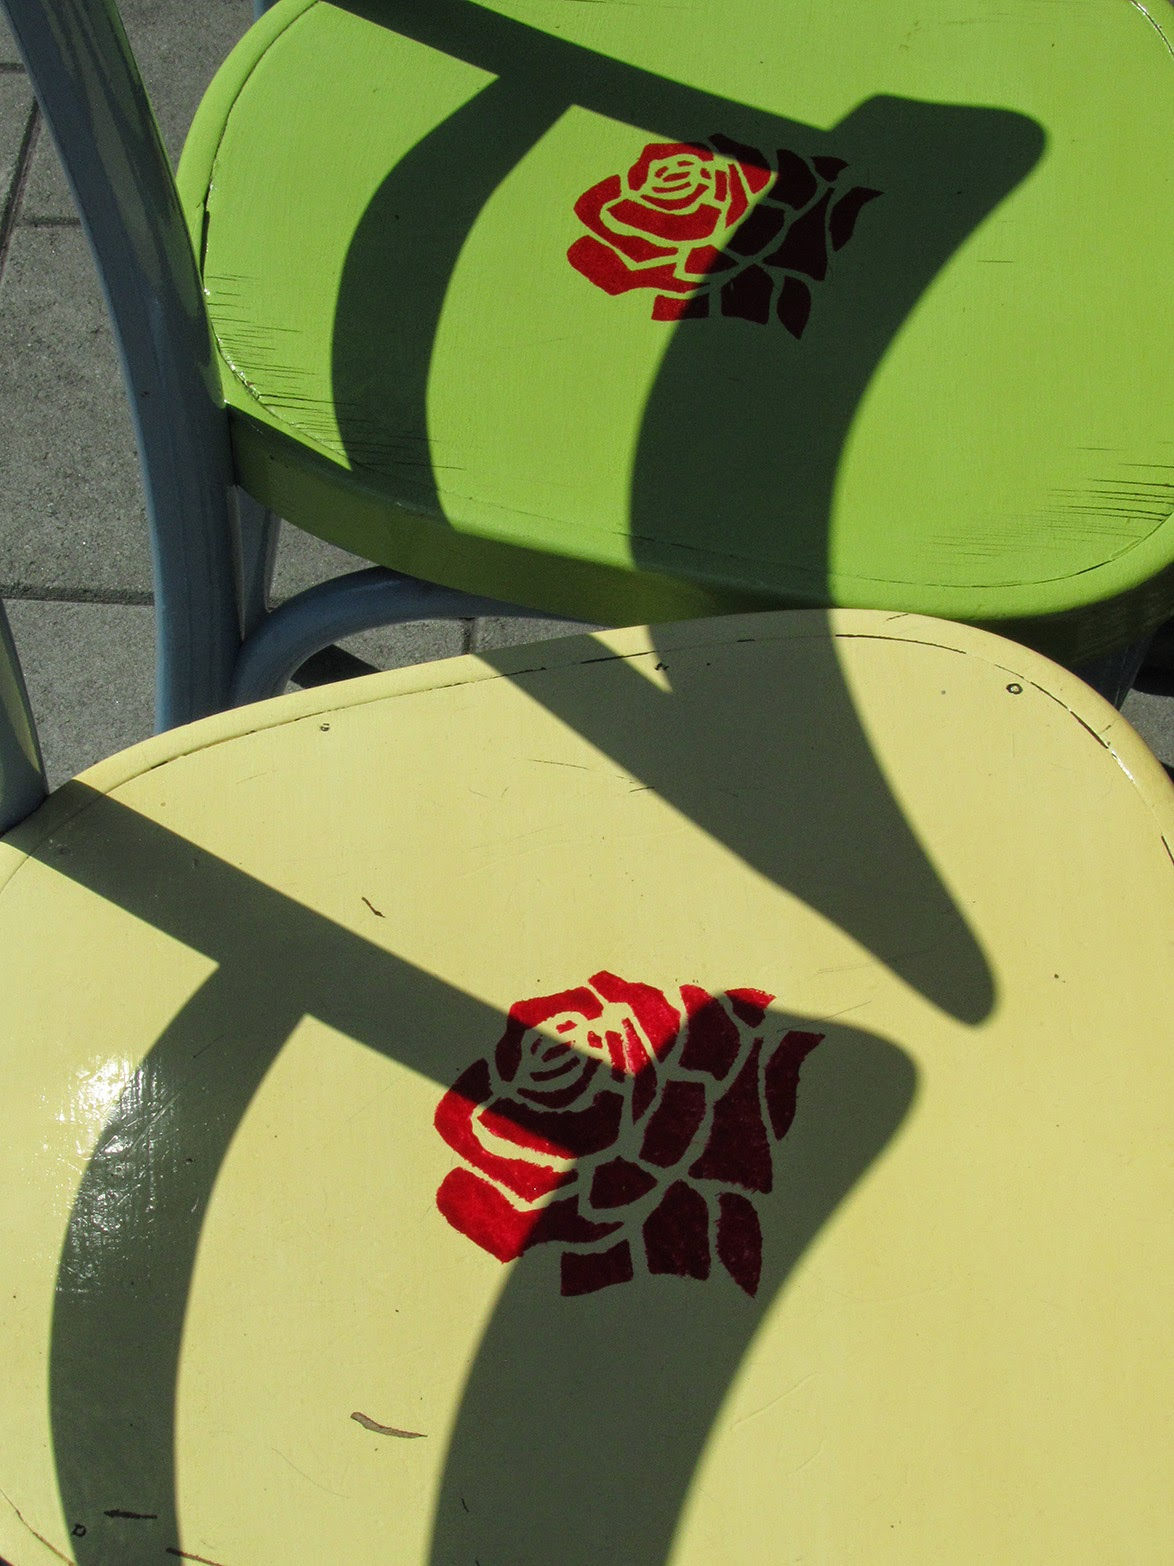 green chairs with red roses